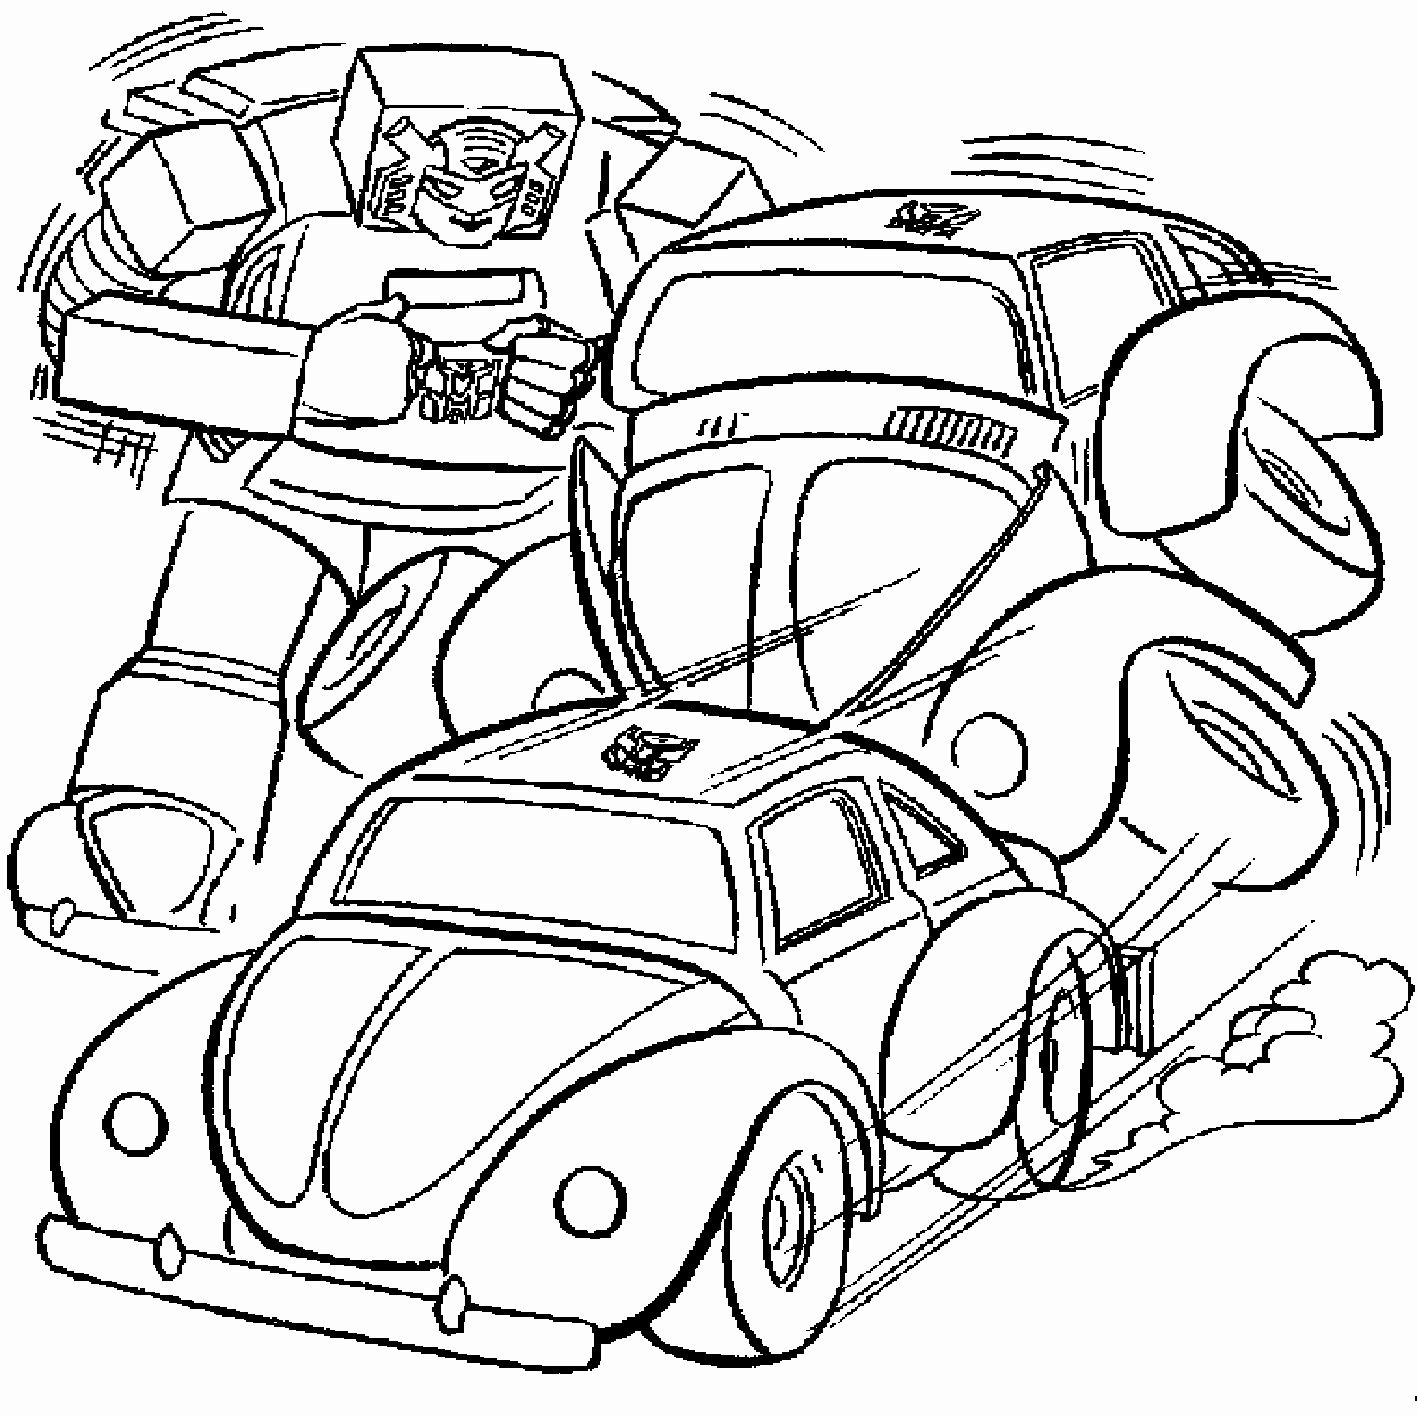 Bumblebee Transformer Coloring Page Awesome Best Transformers Quotes Bumblebee Quotesgram Transformers Coloring Pages Bee Coloring Pages Lego Coloring Pages